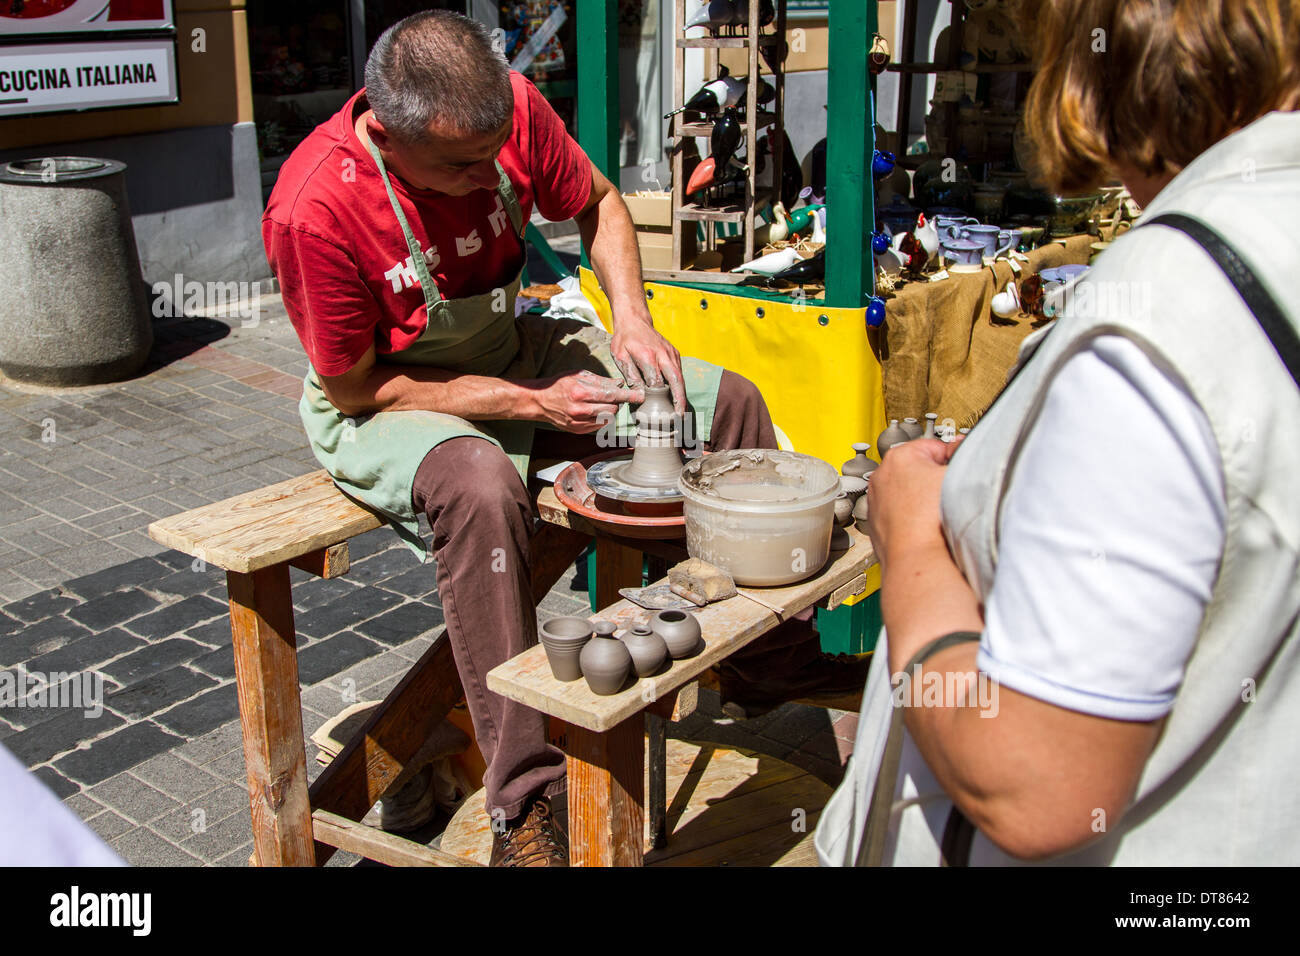 Shaping handmade pottery on the streets of Warsaw, Poland - Stock Image